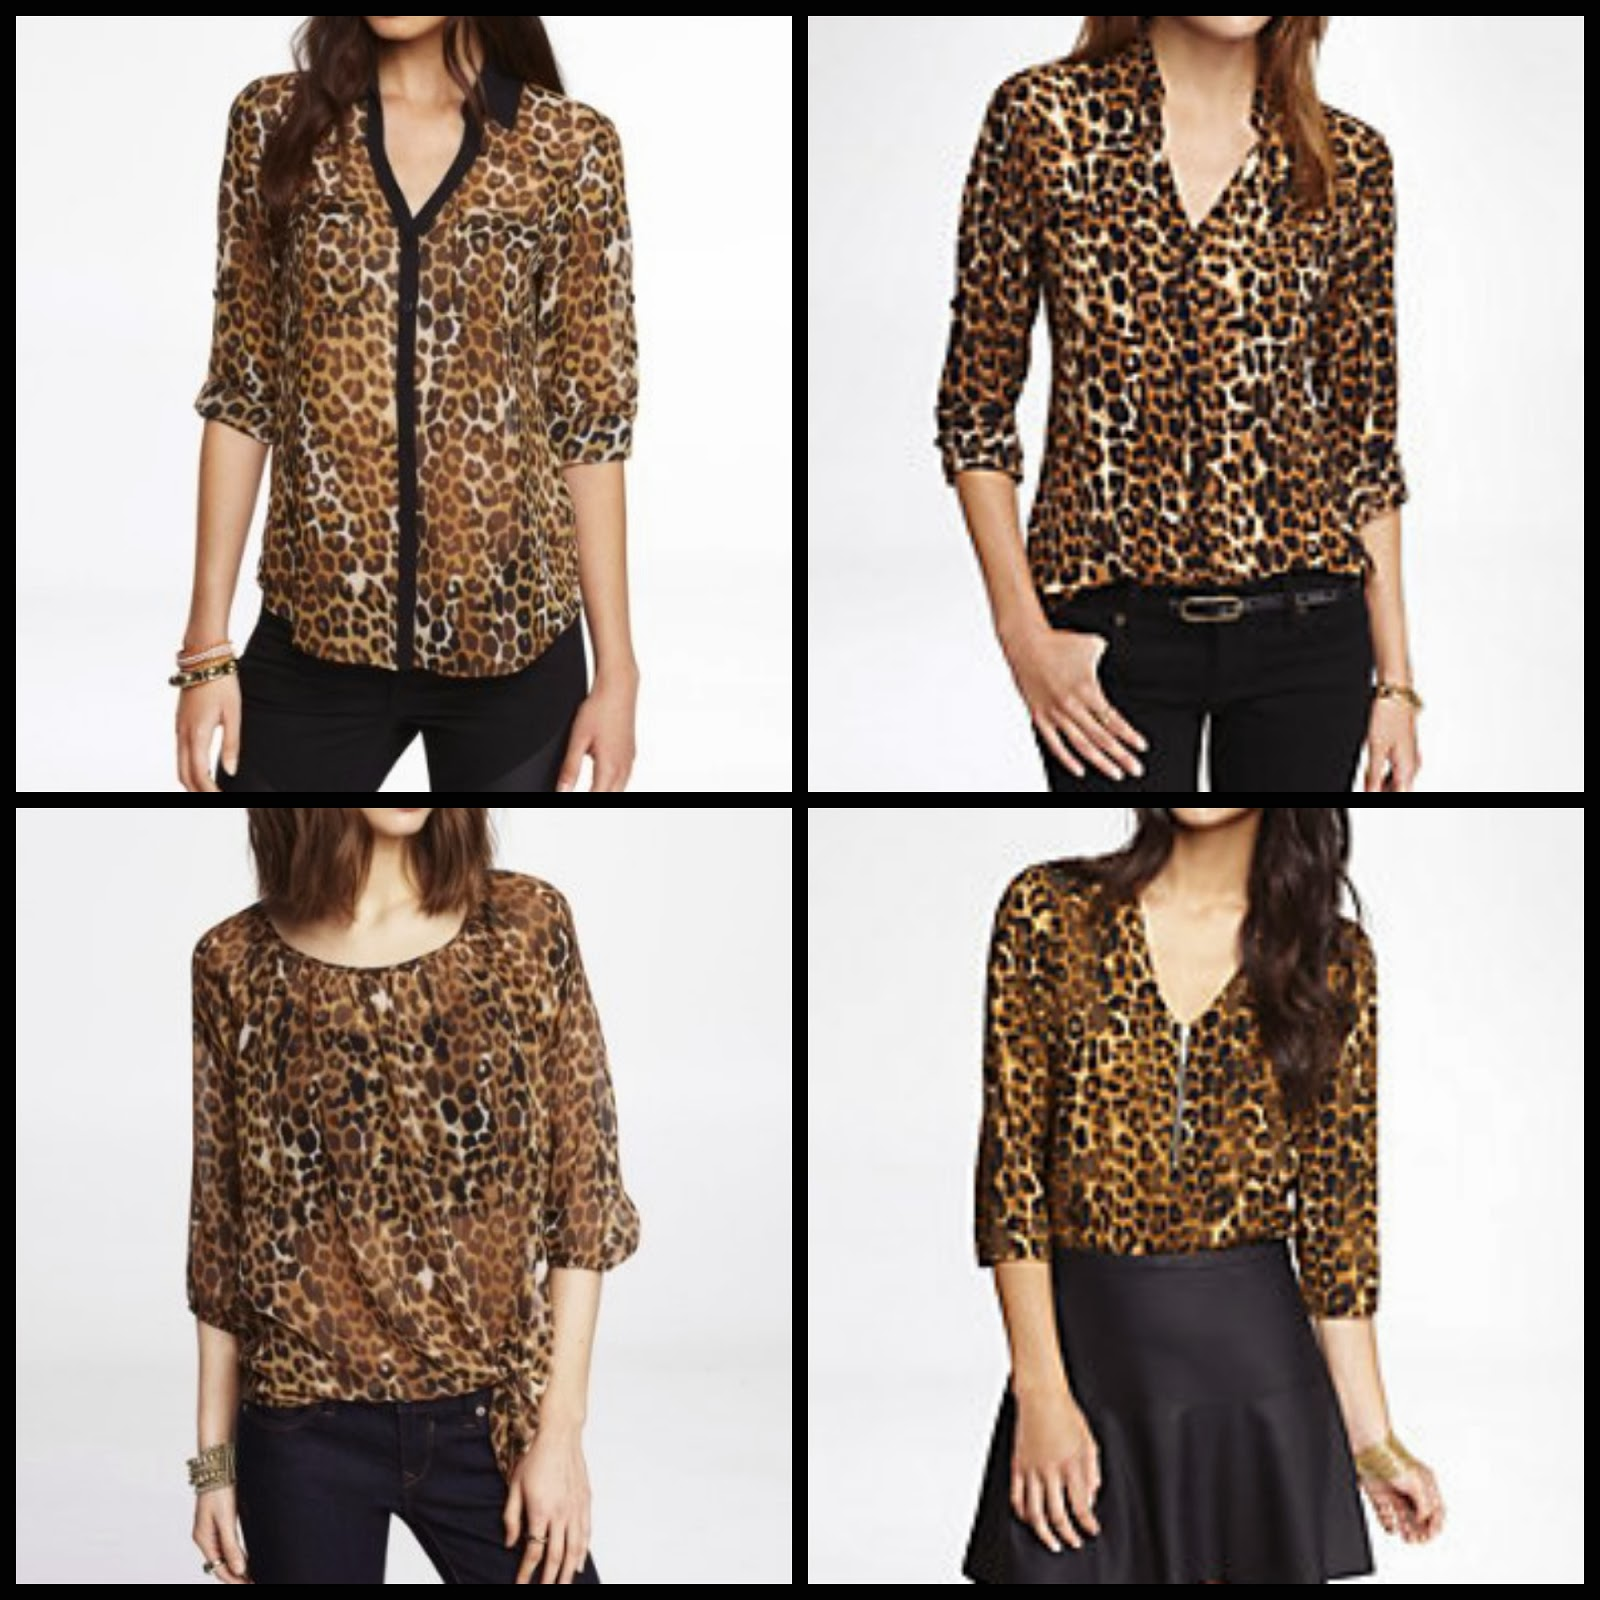 Express leopard print portofino blouse, peasant top, silky zip top